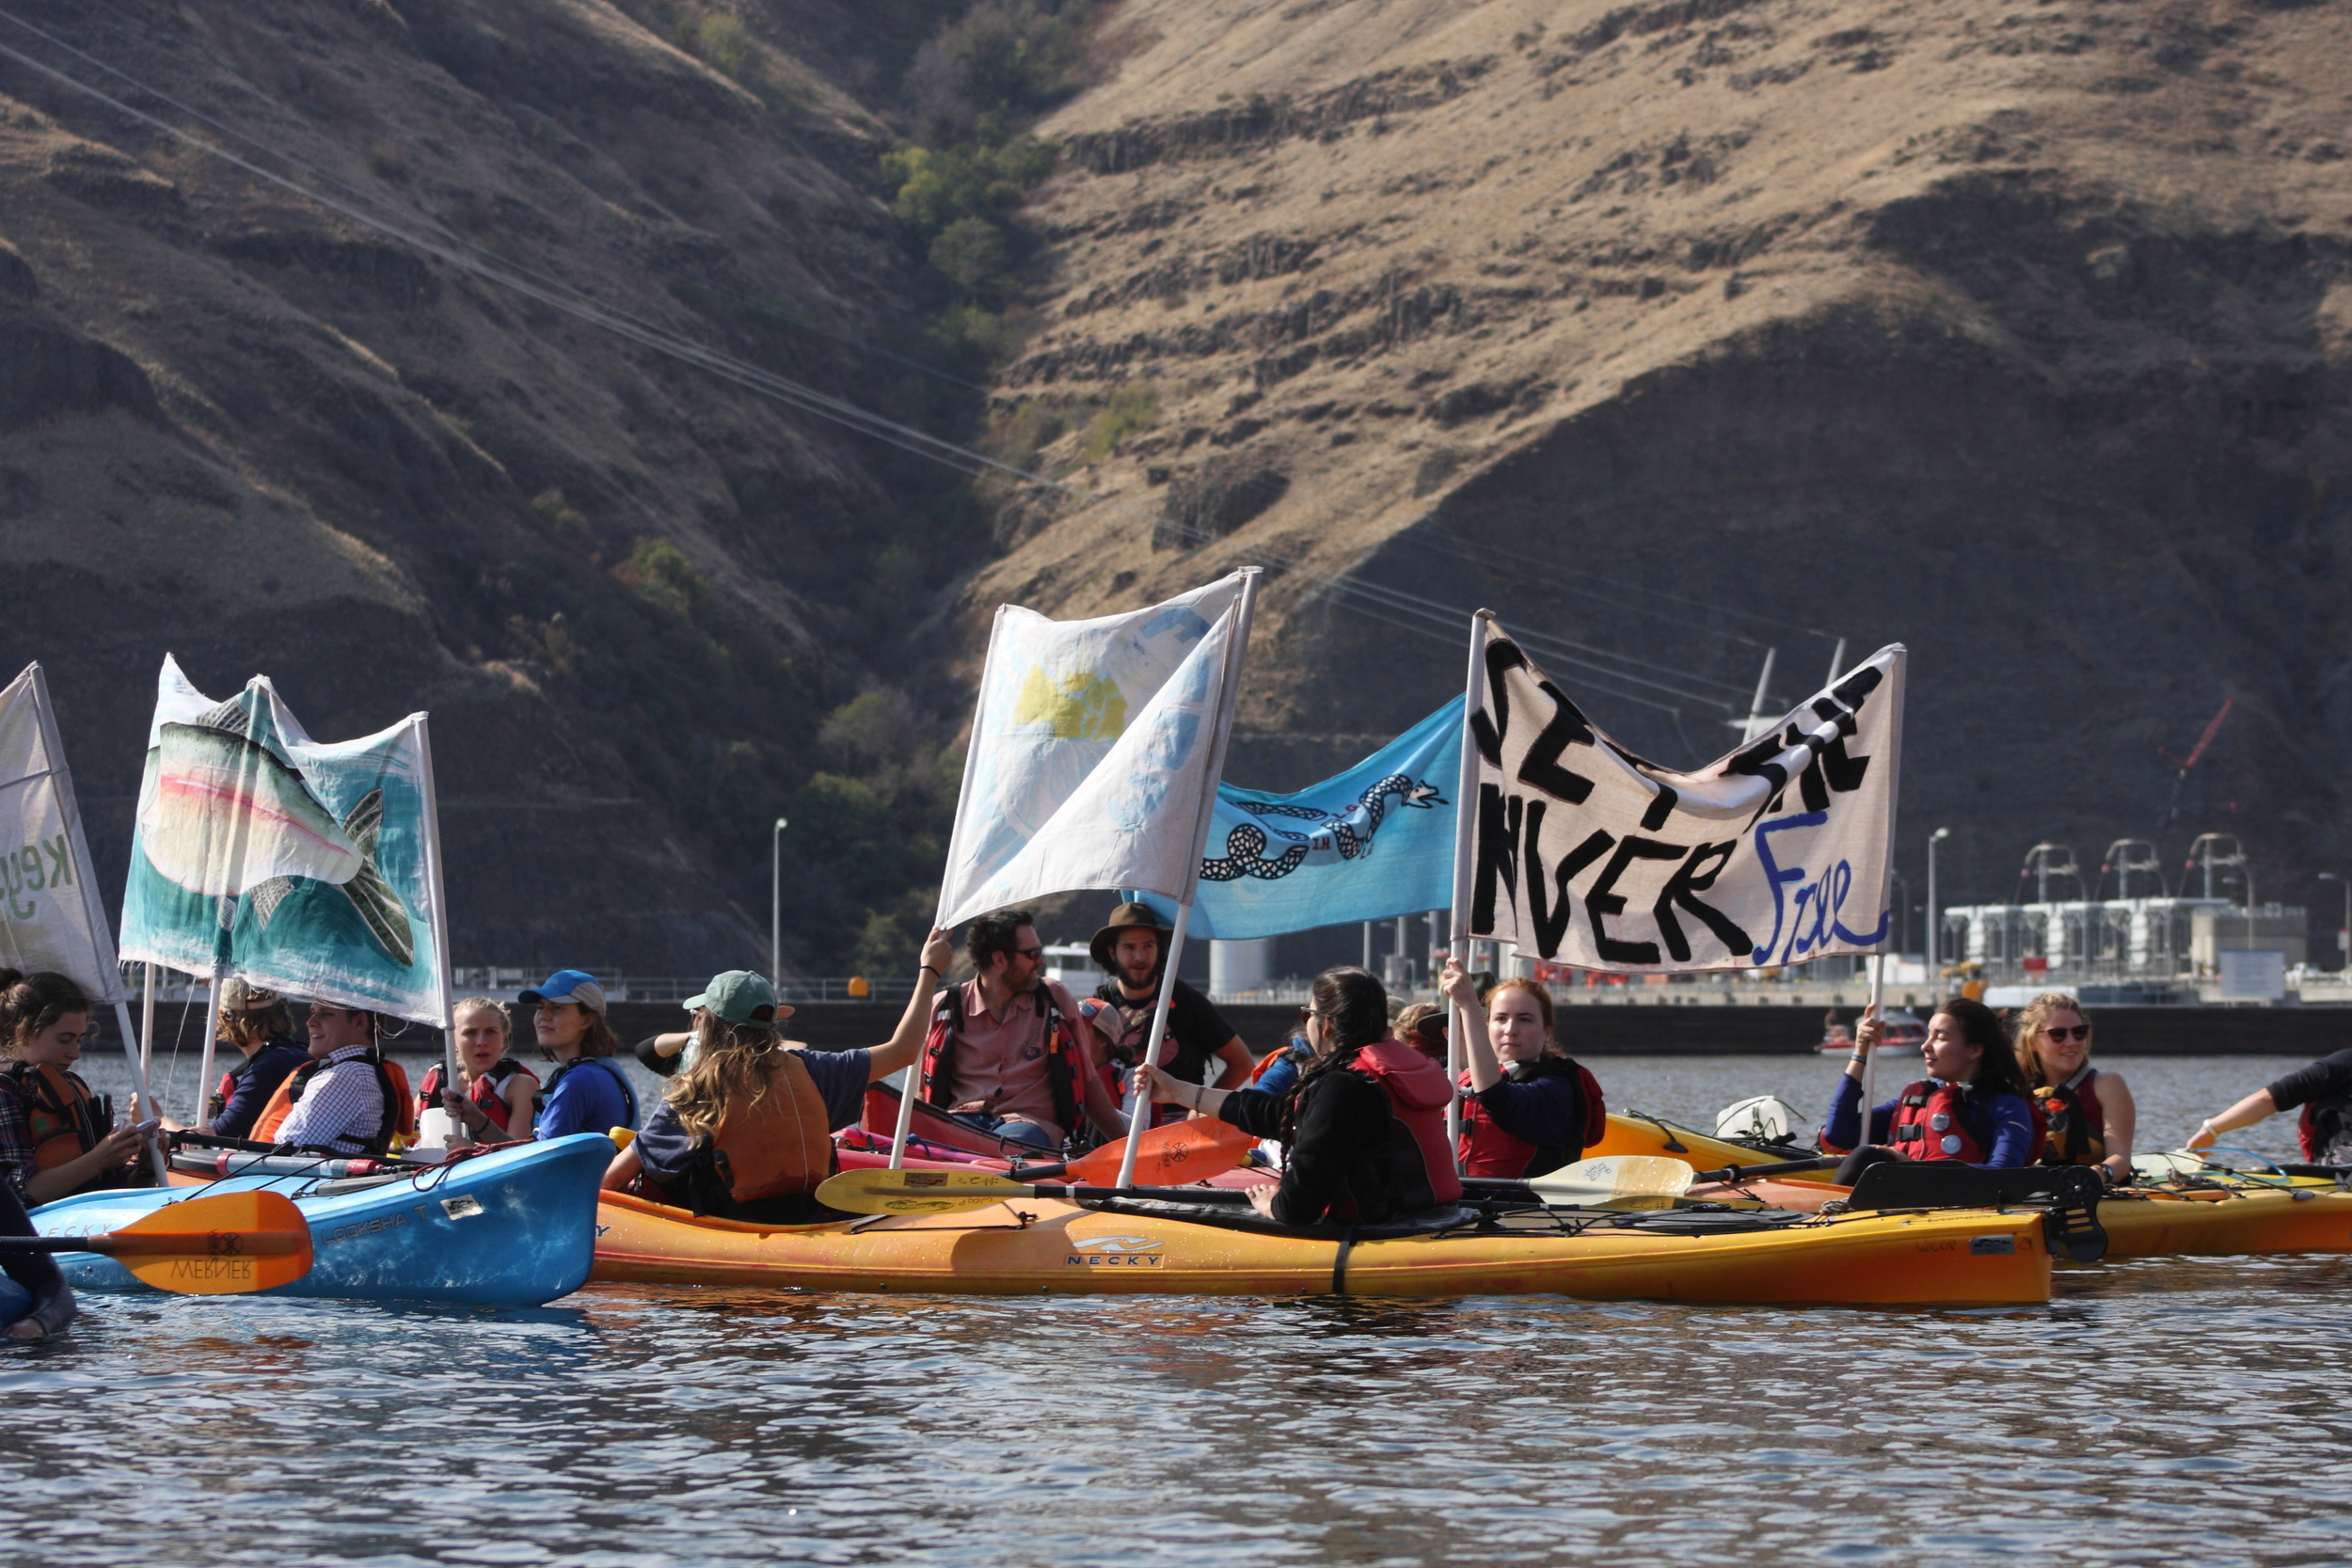 Members of the Free the Snake Flotilla on Lower Granite Lake Oct. 3. Photo by Greg Stahl.